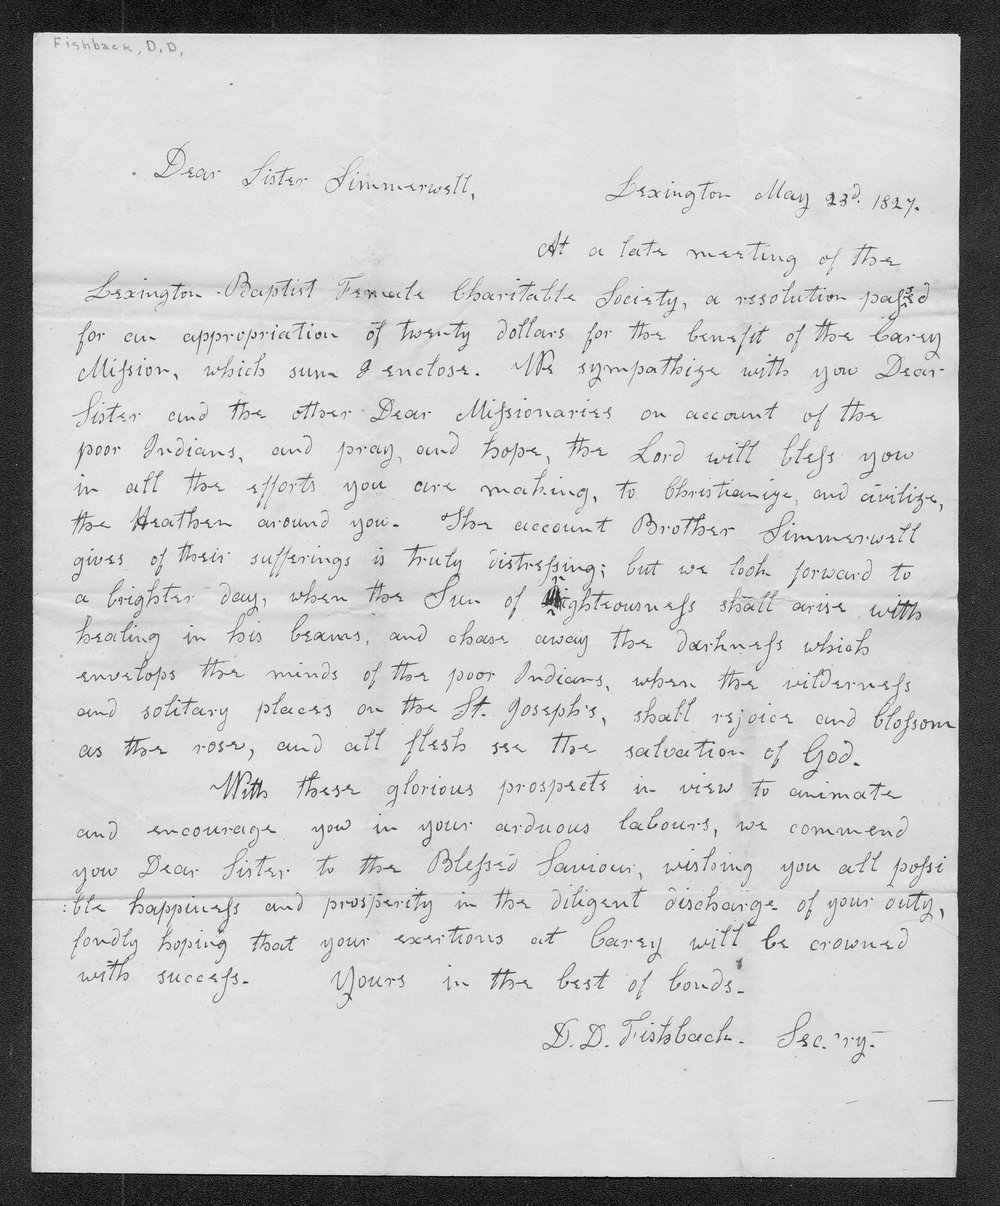 D.D. Fishbank to Mrs. Francis Simmerwell - 1